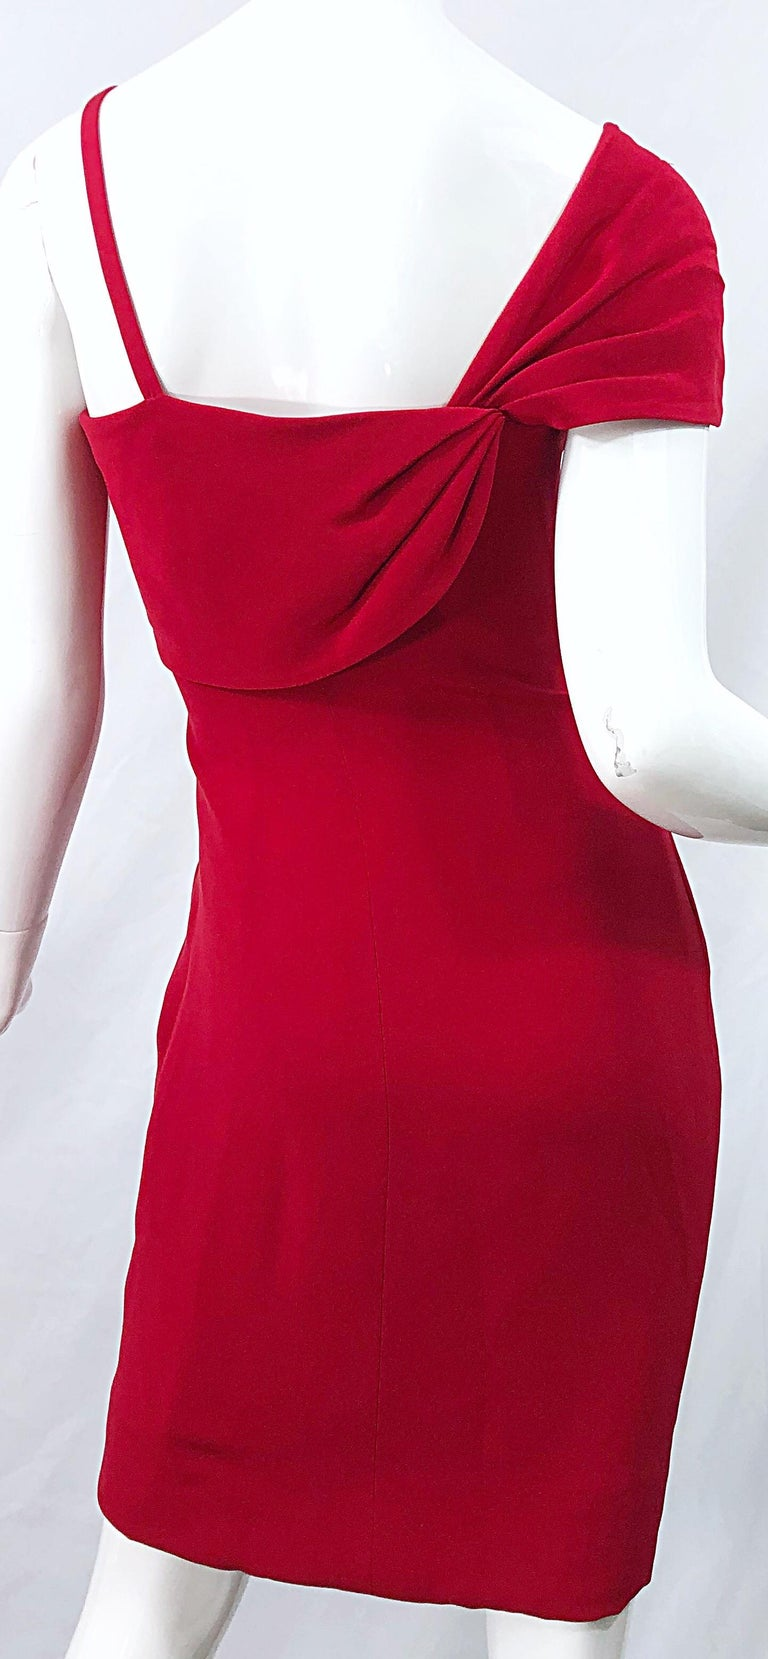 Vintage Bill Blass 1990s Size 6 Lipstick Red One Shoulder 90s Silk Dress For Sale 5